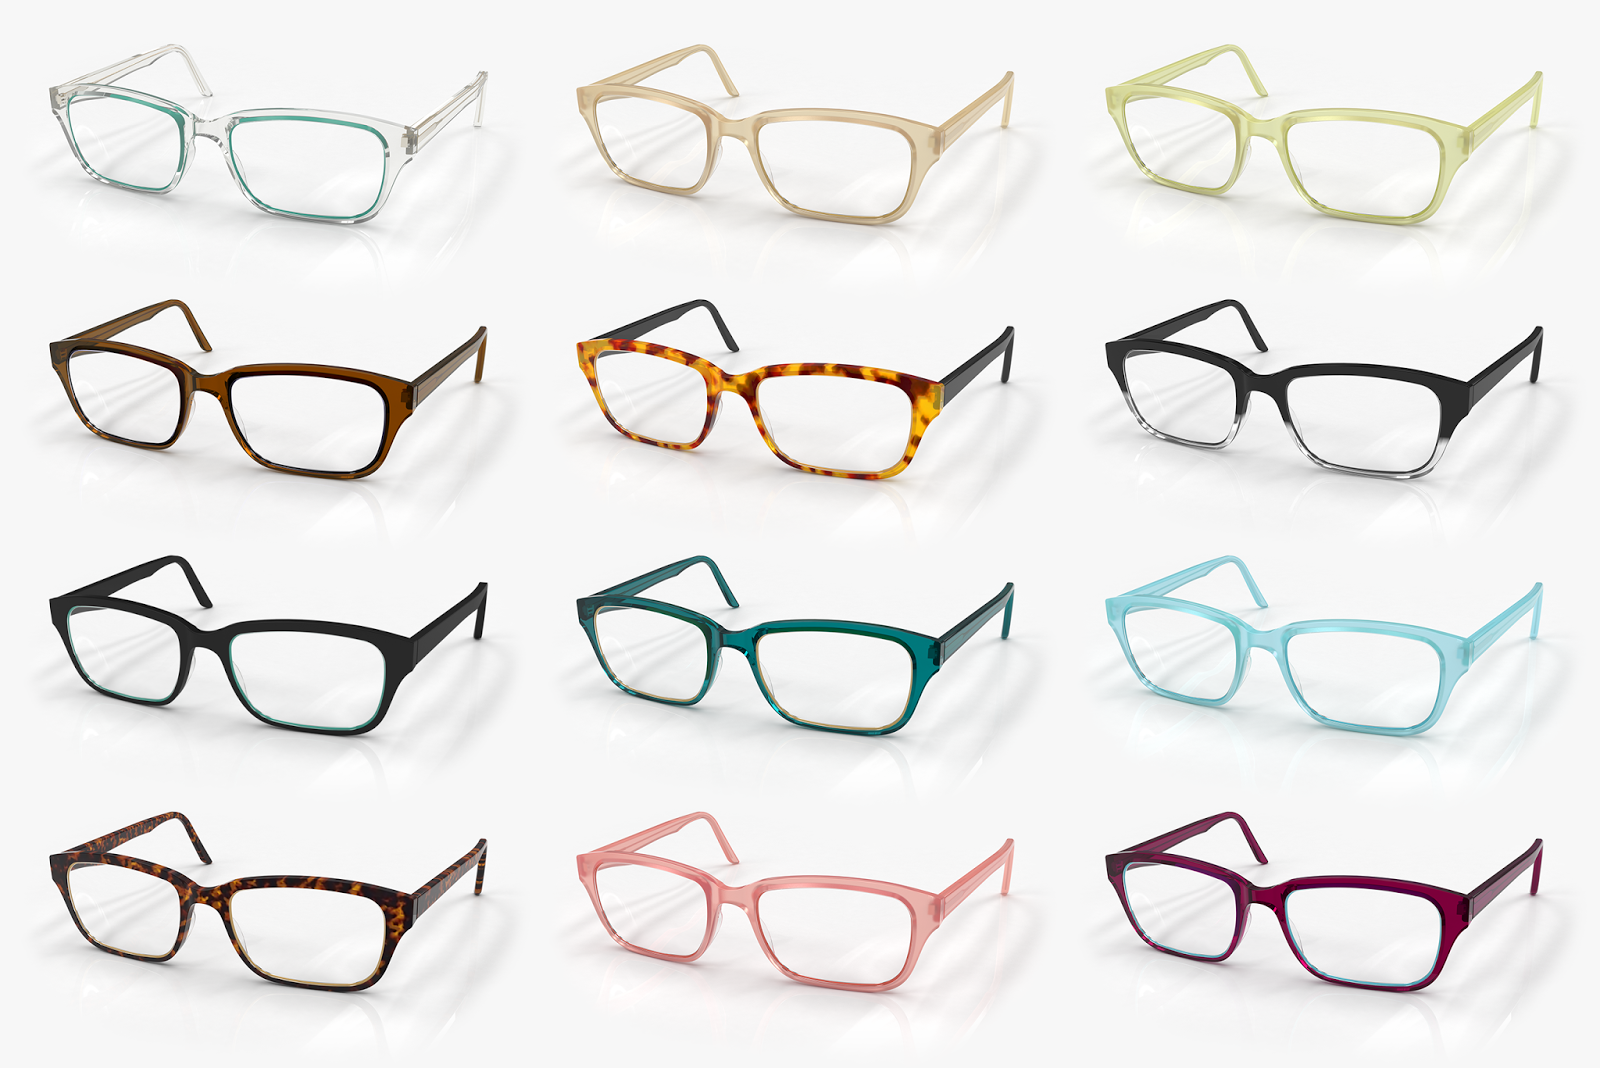 How To Pick Eyeglass Frame Color : The Well-Appointed Catwalk: Interchangeable Frames by Frameri